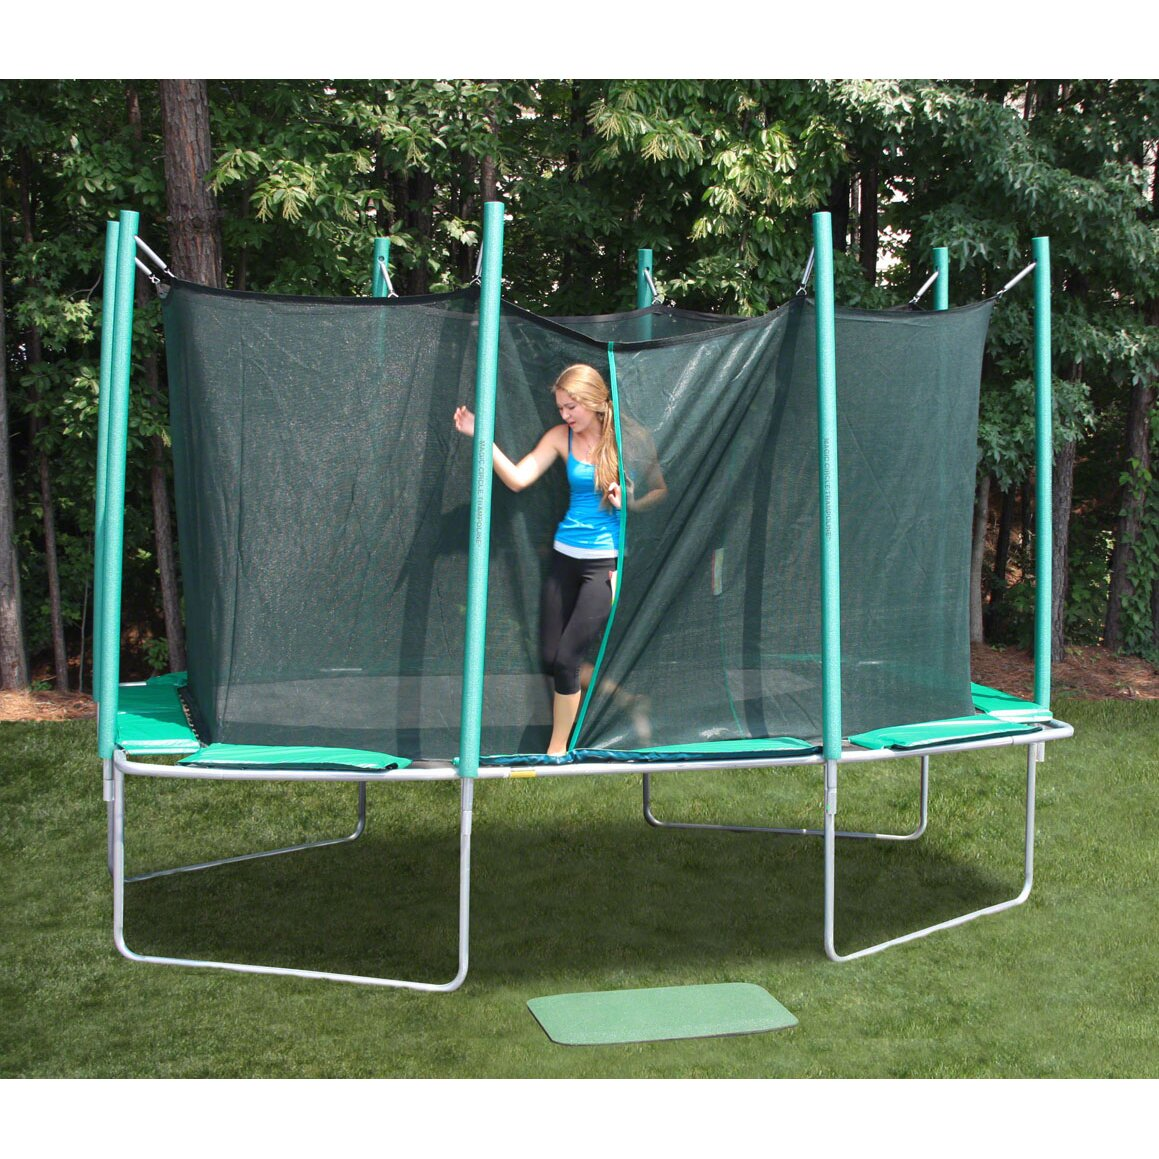 Kidwise Jumpfree 15 Ft Trampoline And Safety Enclosure: Kidwise 9 X 14 Ft. Rectagon Trampoline With Enclosure